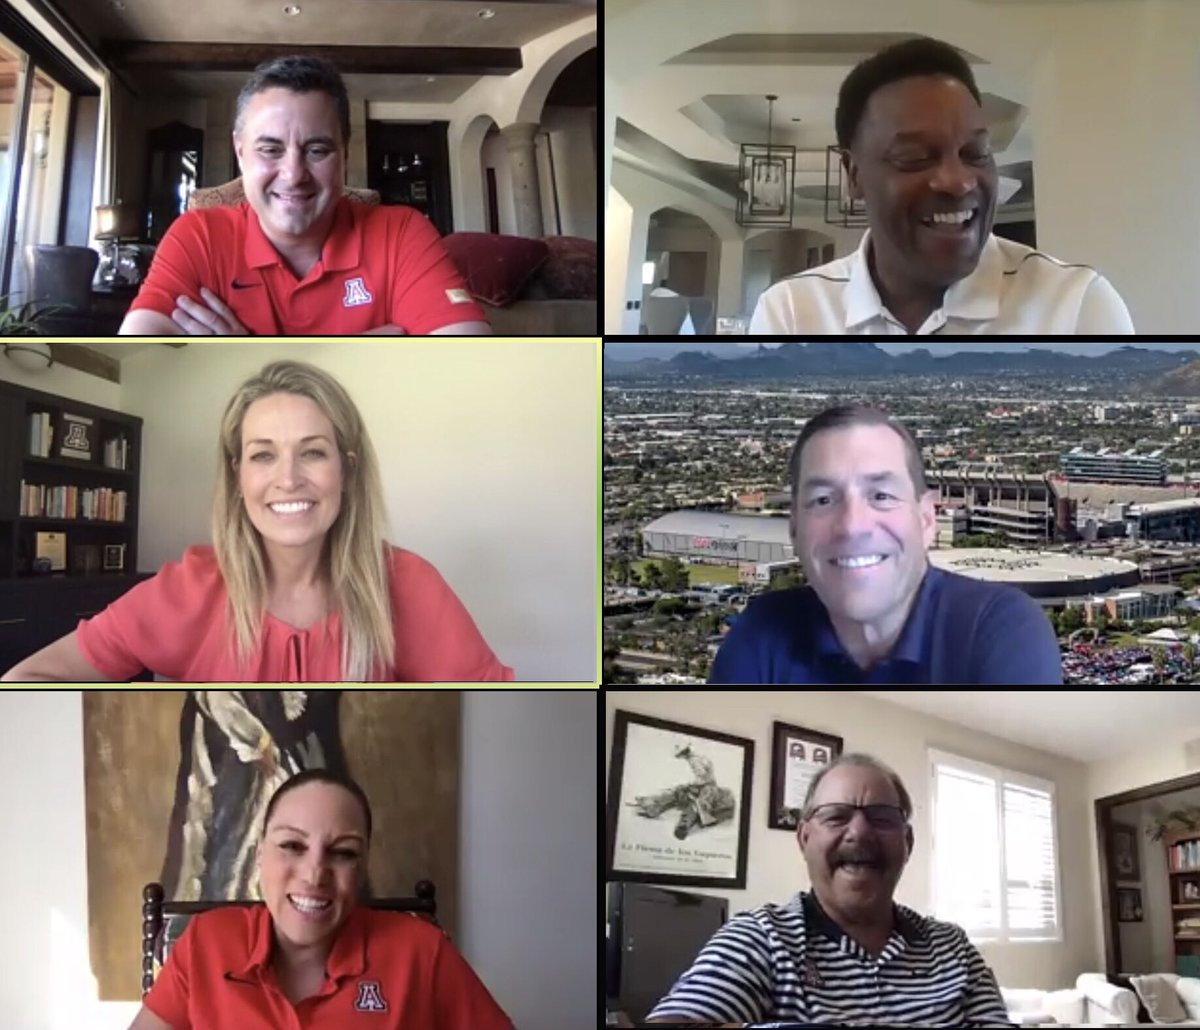 Thank you to everyone who came out to the Wildcat Virtual Chat! It was great to hear new perspectives and how this time has been beneficial to head coaches in learning to be flexible with change. https://t.co/VQwZZn3MGo